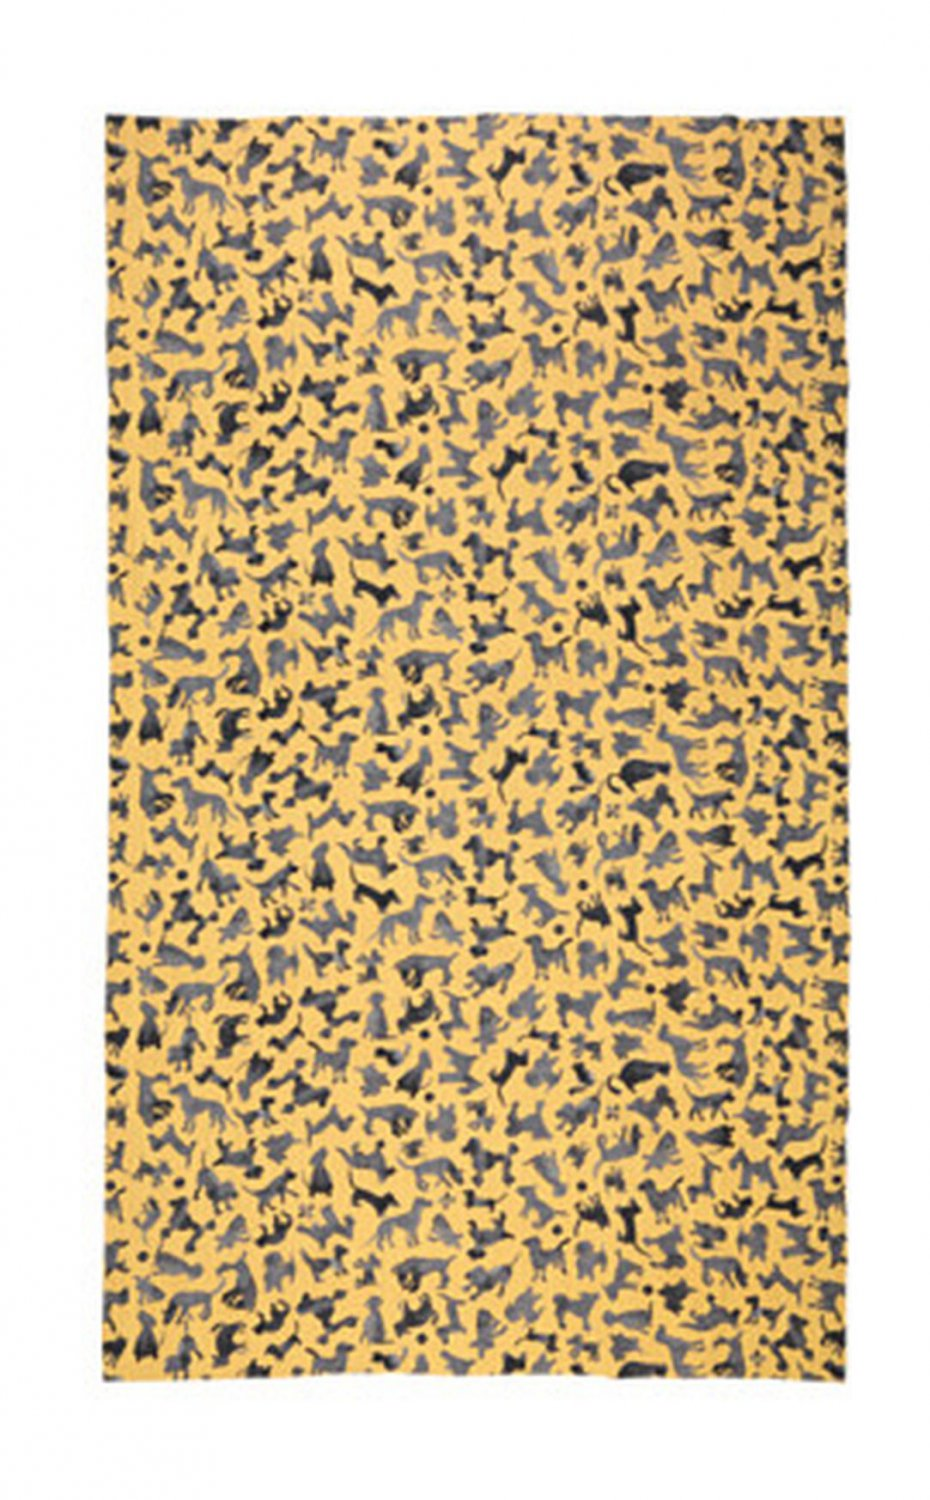 IKEA Sallskap Fabric Material DOGS Stripes 3.25 Yd S�LLSKAP Gold Gray Yellow Pre-cut